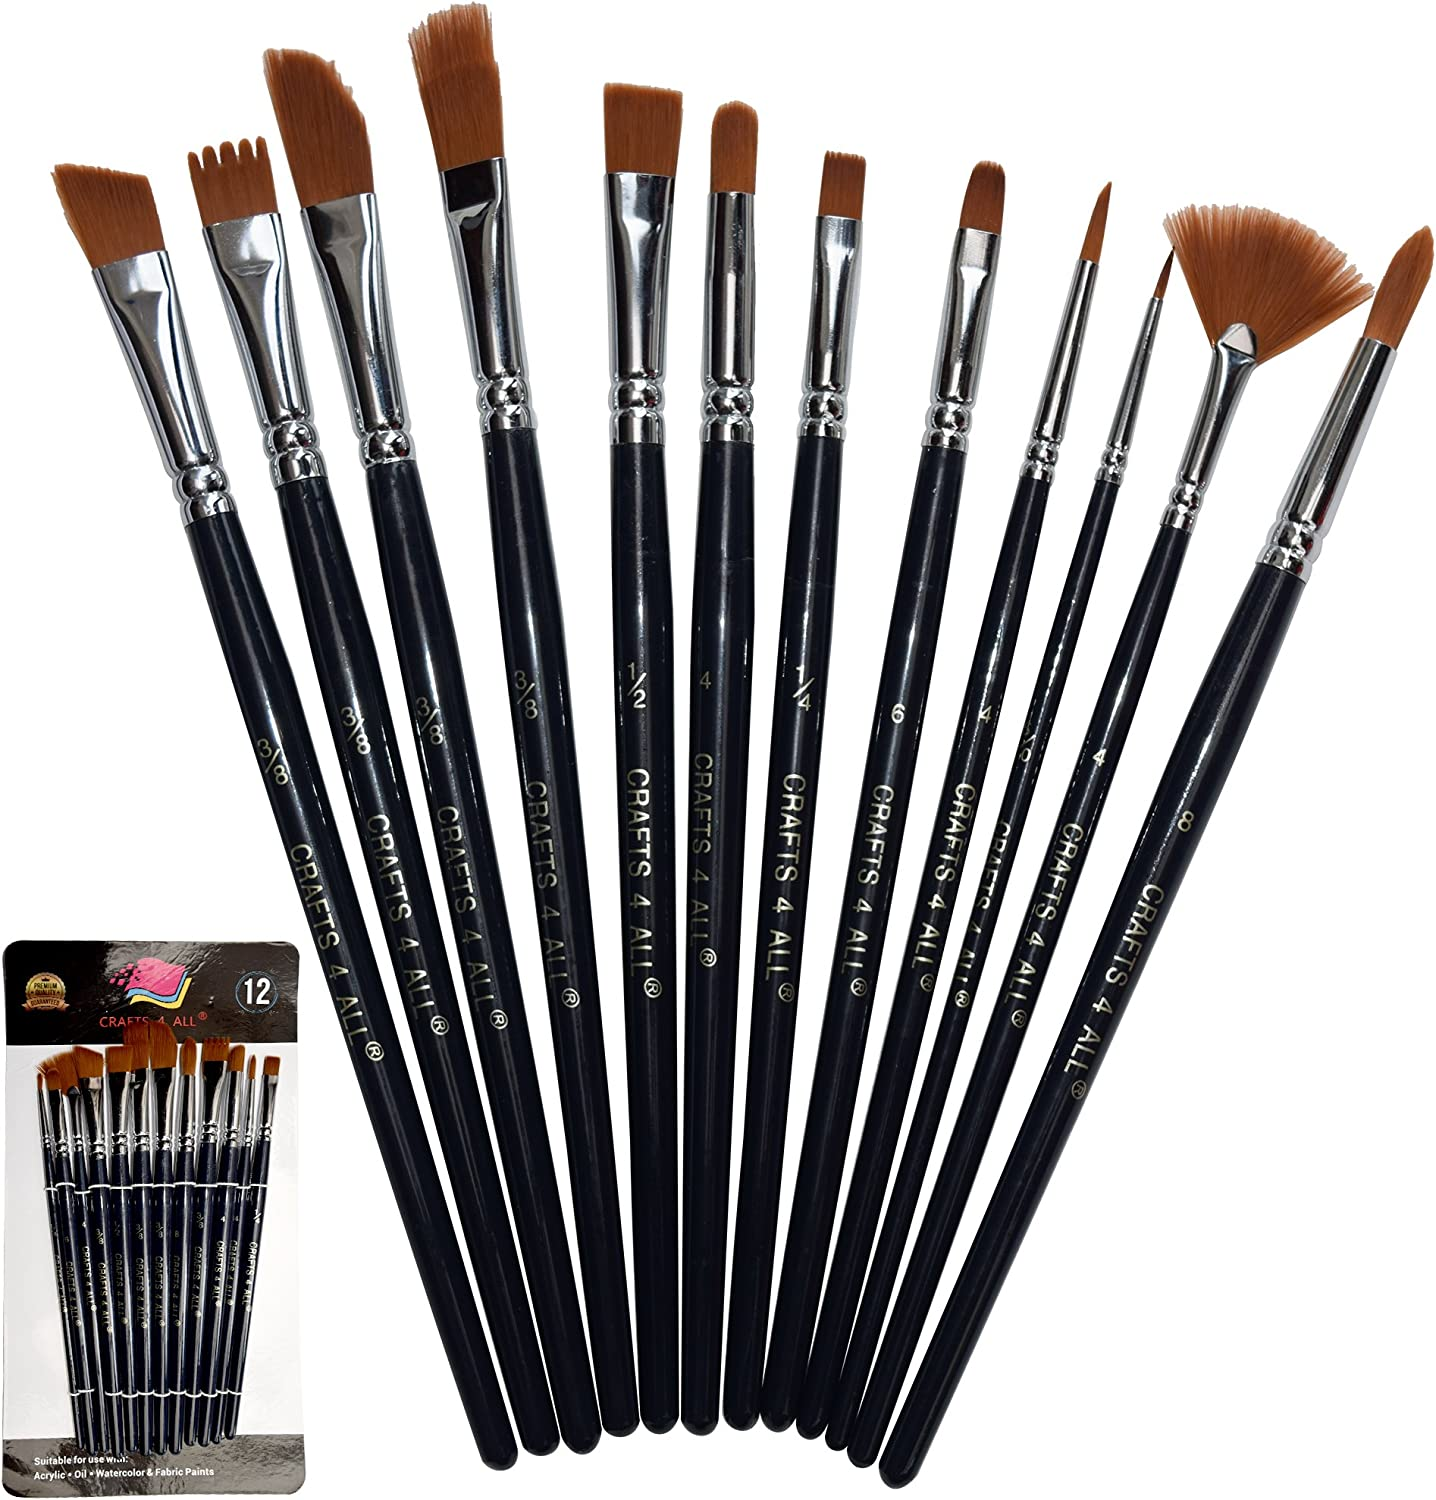 Paint Brushes 12 Set Professional Paint Brush Round Pointed Tip Nylon Hair Artist Acrylic Brush For Acrylic Watercolor Oil Painting By Crafts 4 All